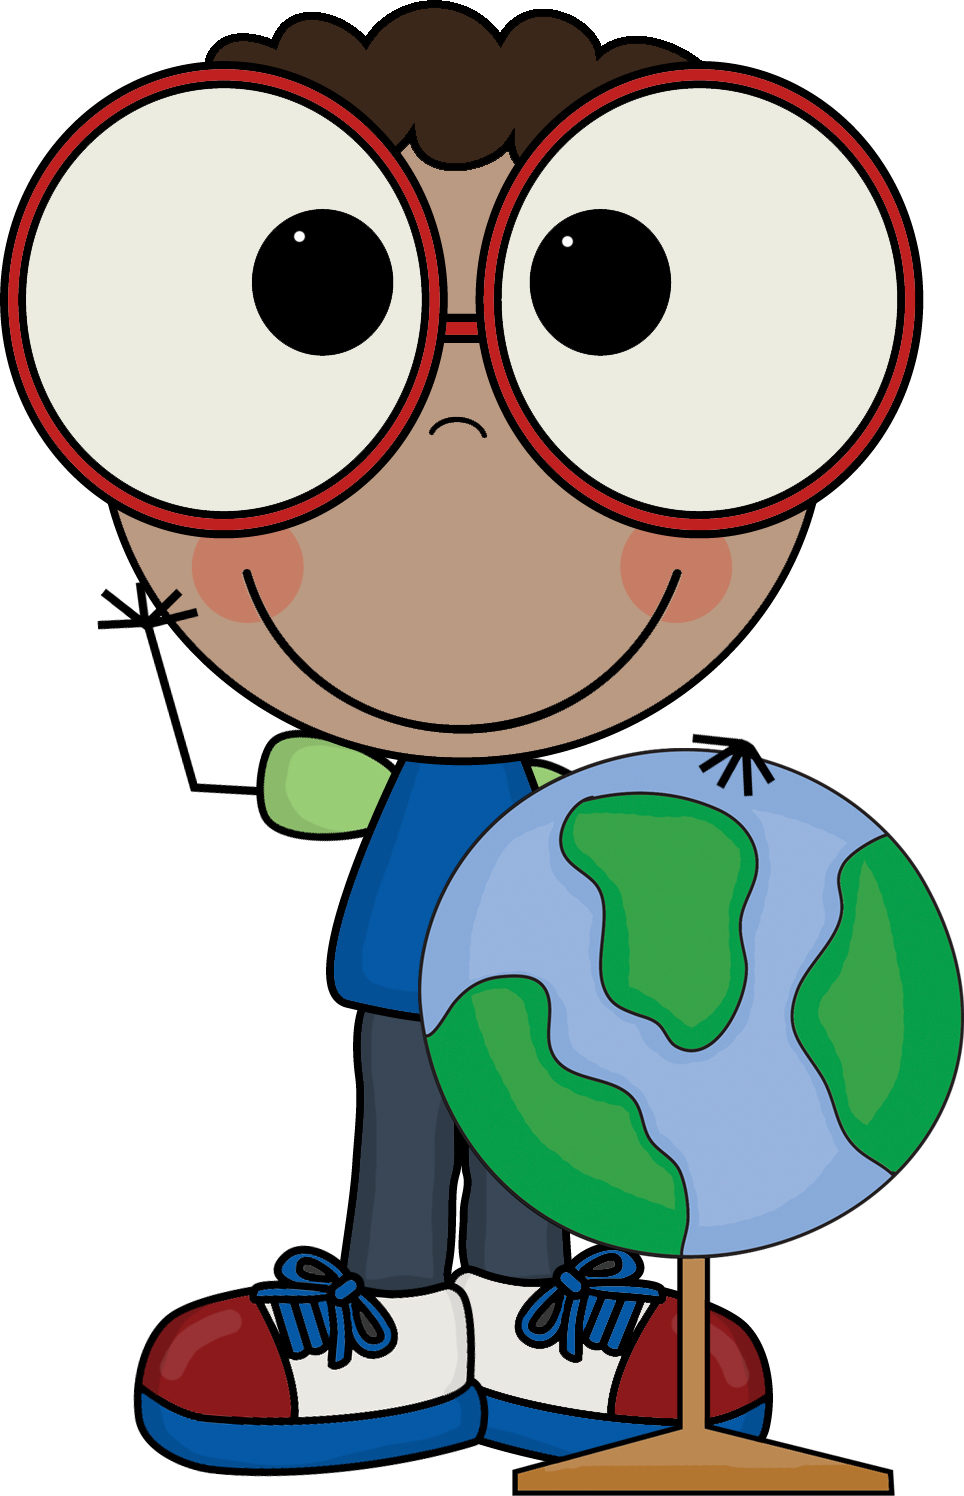 Smarty Pants Clip Art Boy With Globe Soc-Smarty Pants Clip Art Boy With Globe Social Studies-3